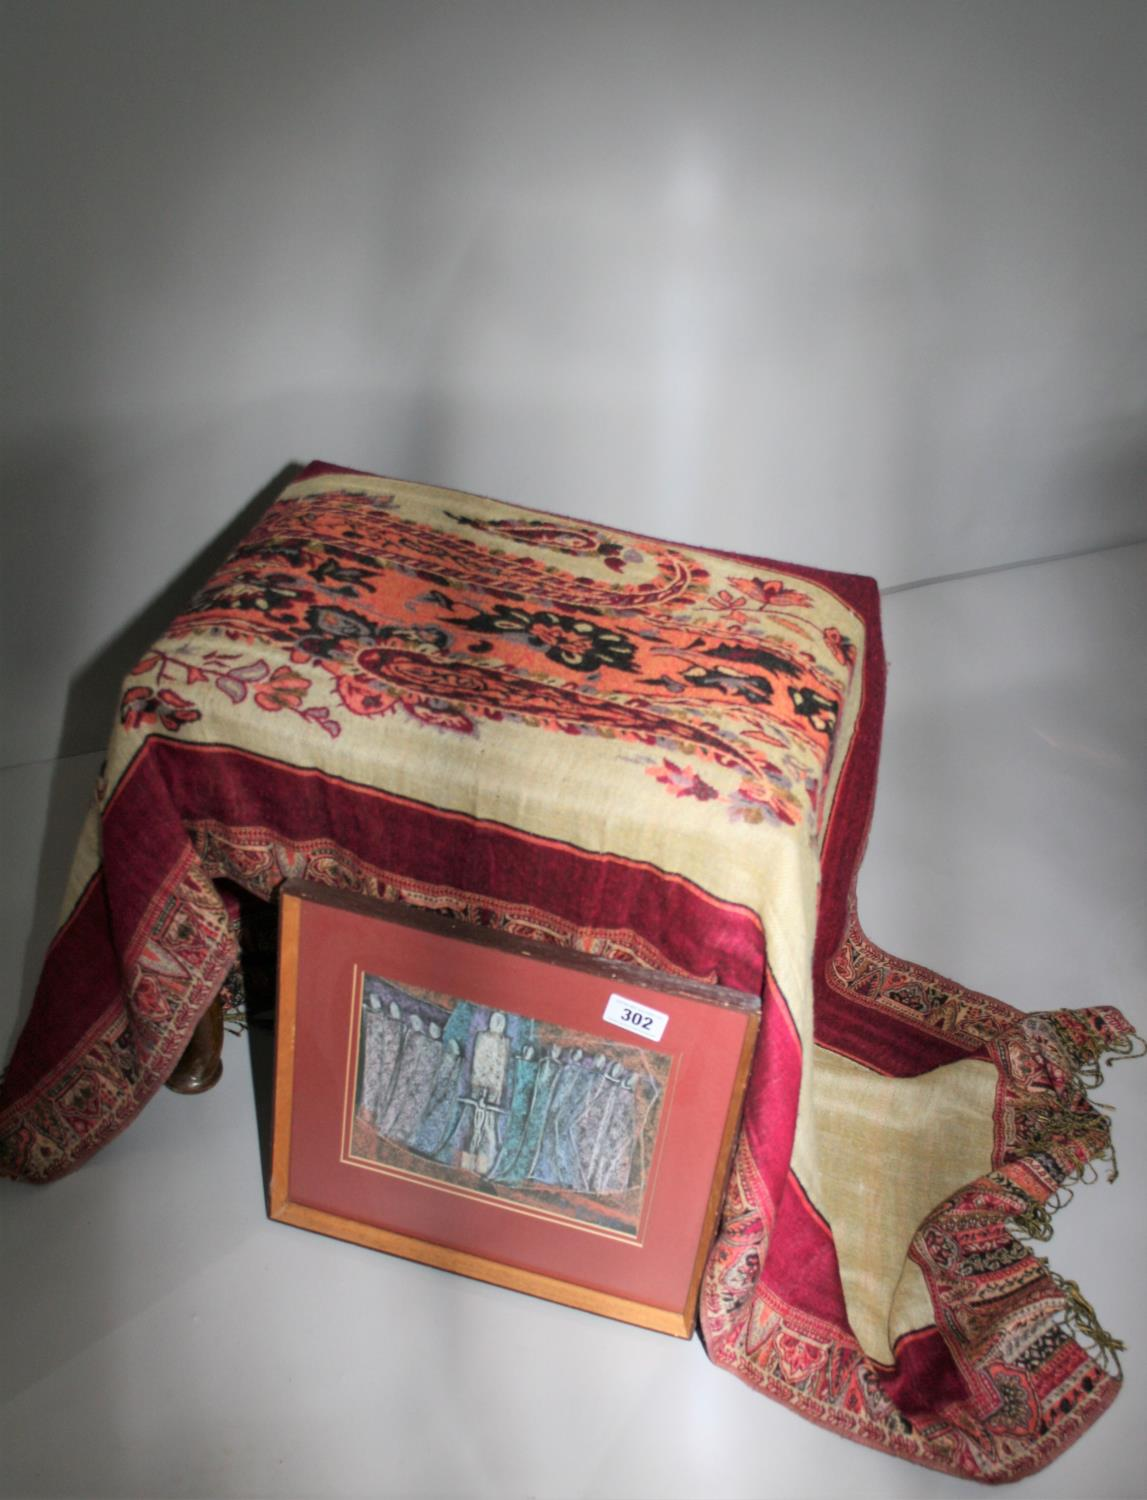 Frances Biggs Communion of Saint and hand woven scarf.